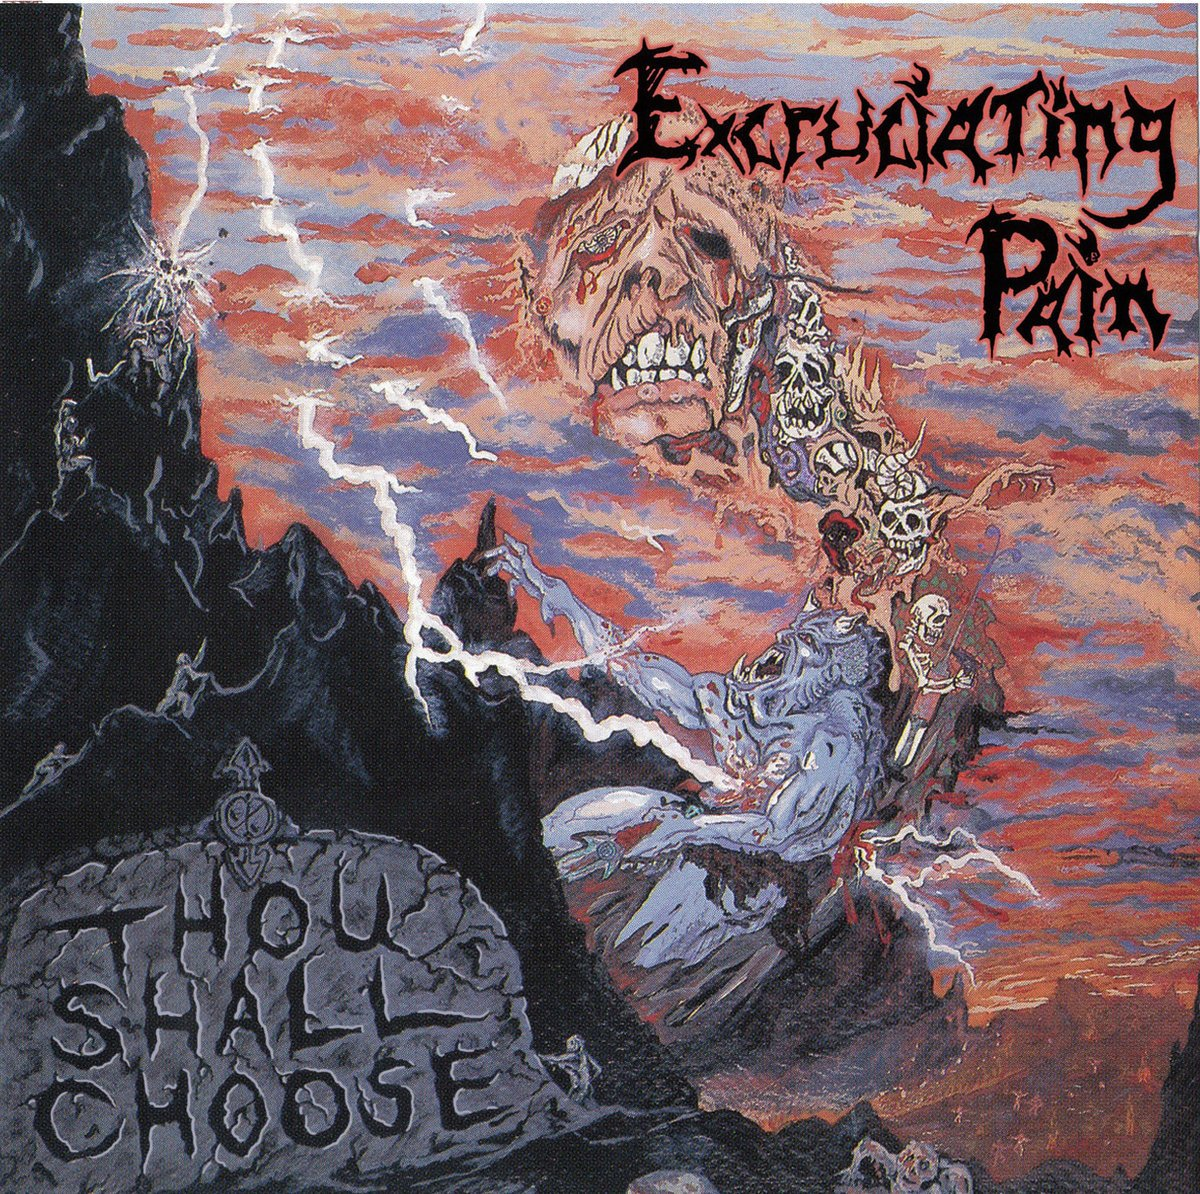 EXCRUCIATING PAIN - Thou Shall Choose CD